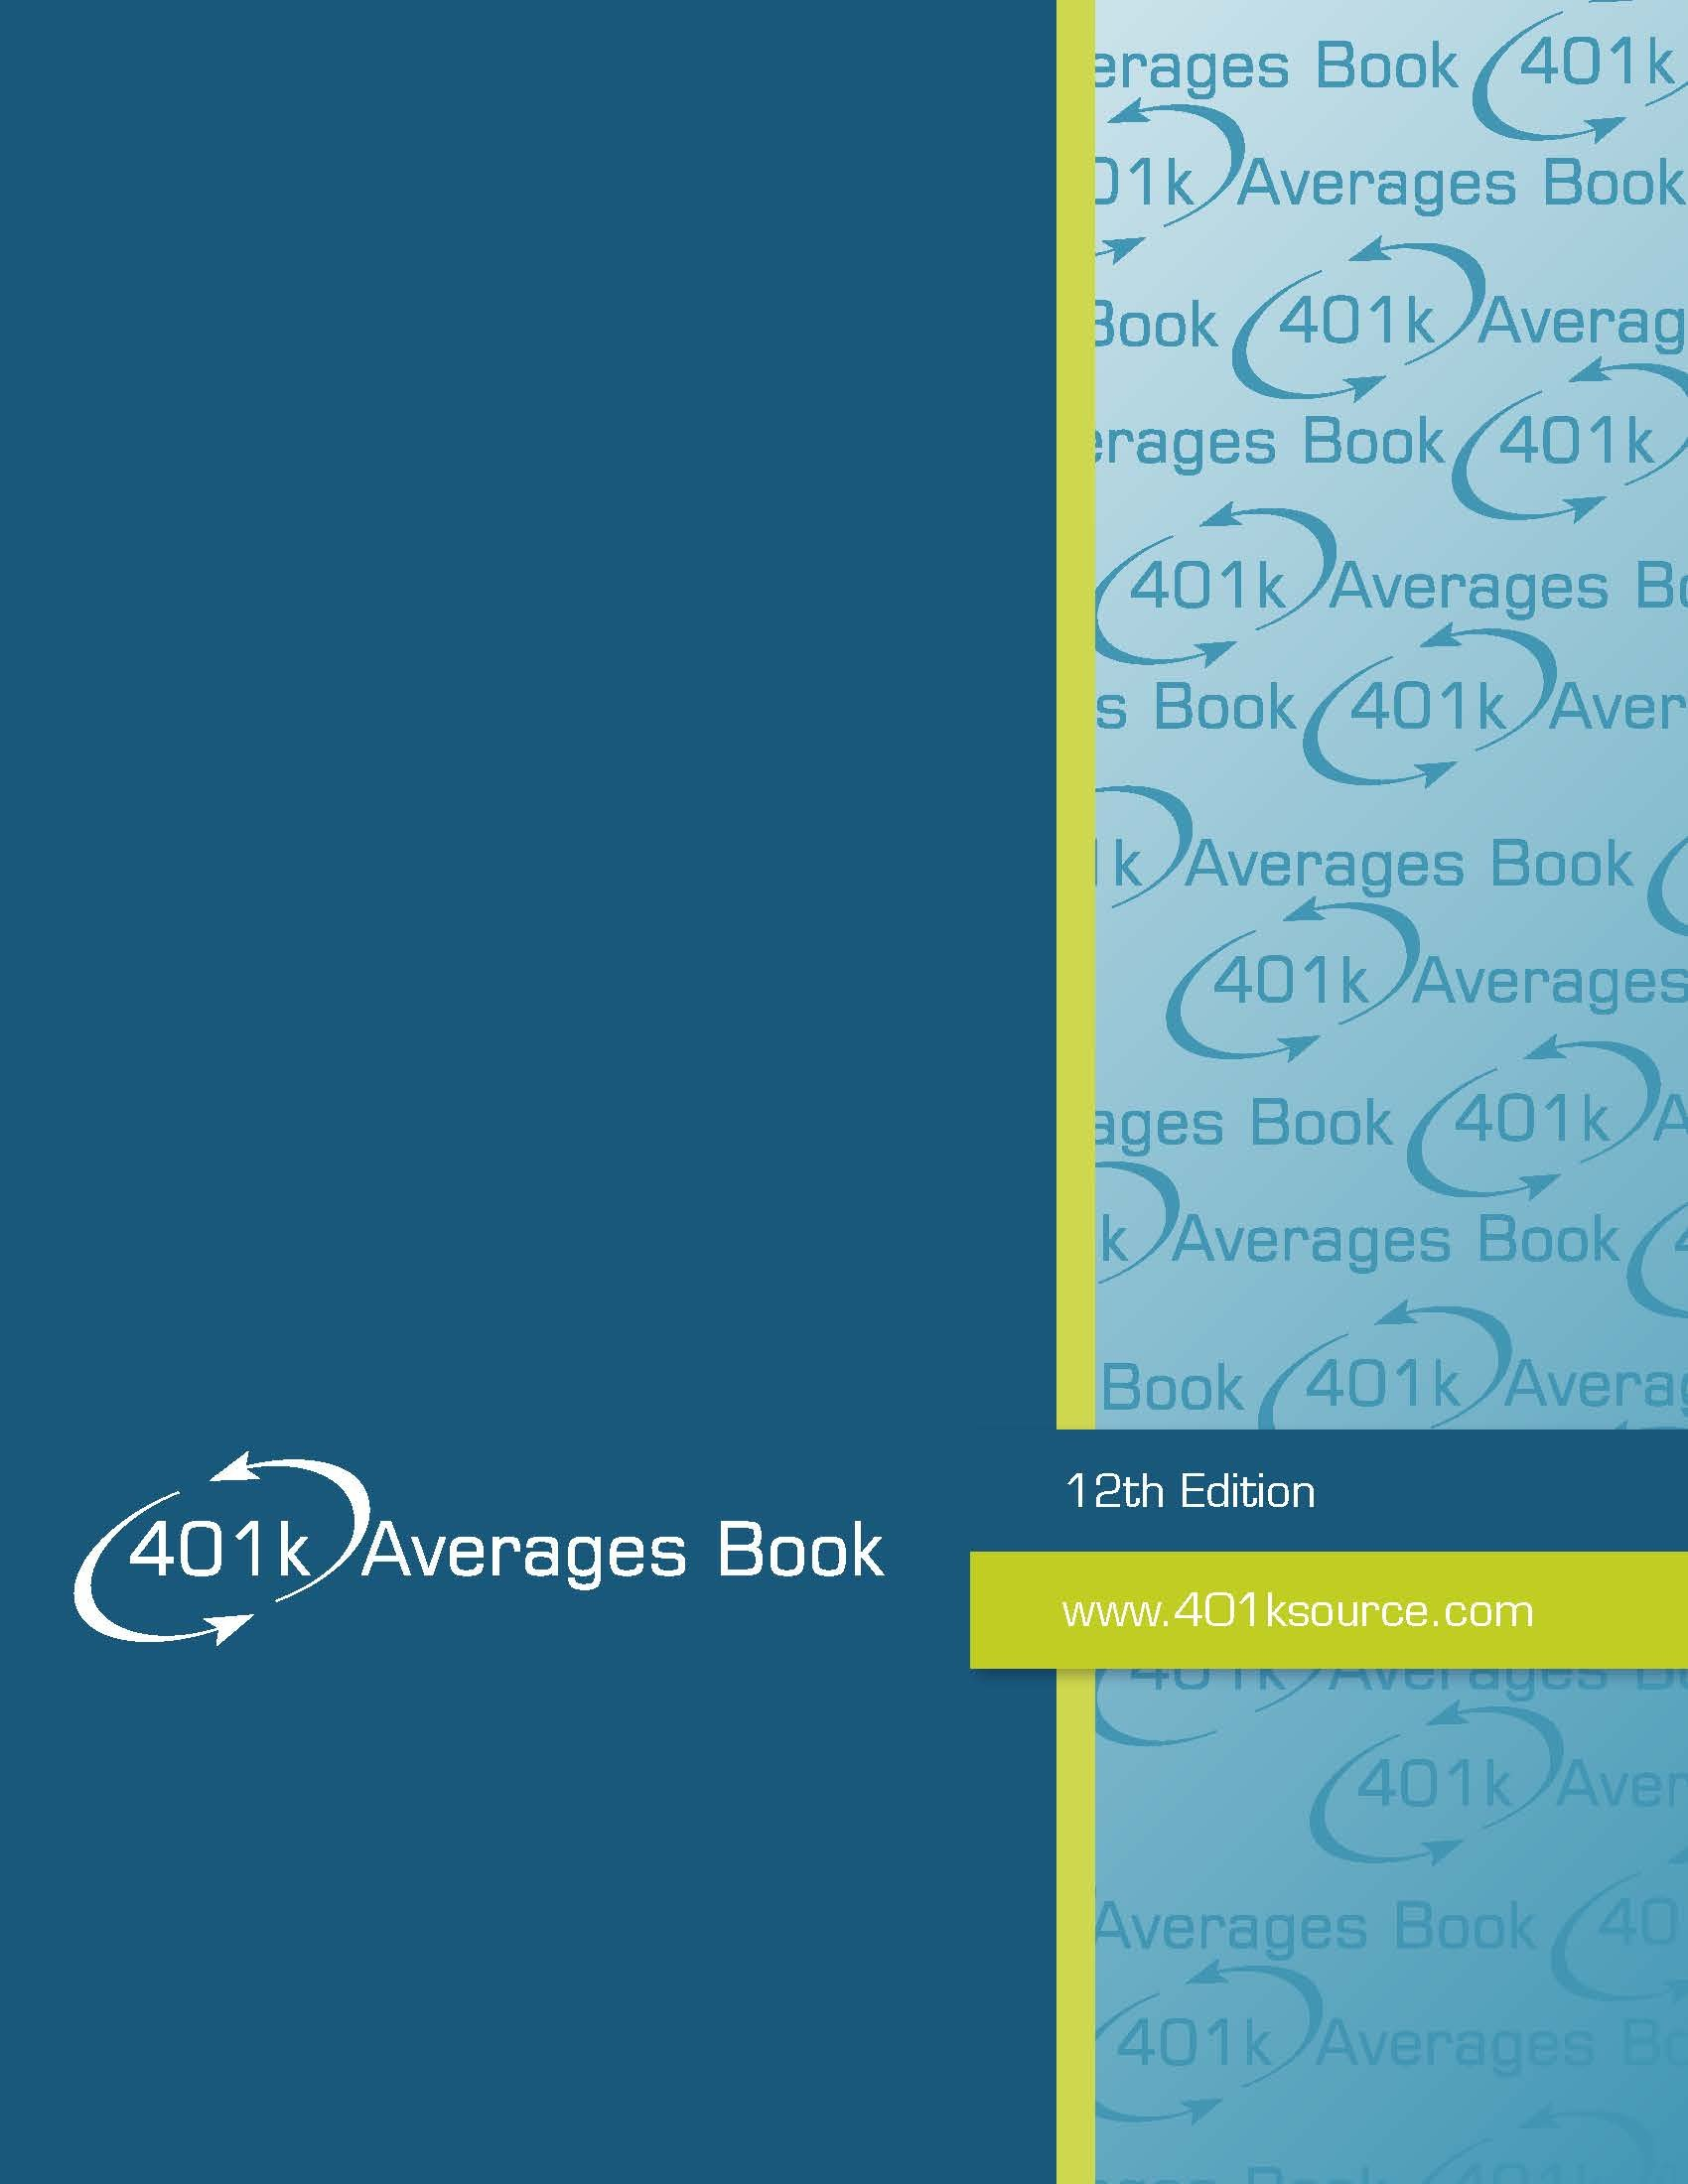 Download 401k Averages Book 12th Edition ebook